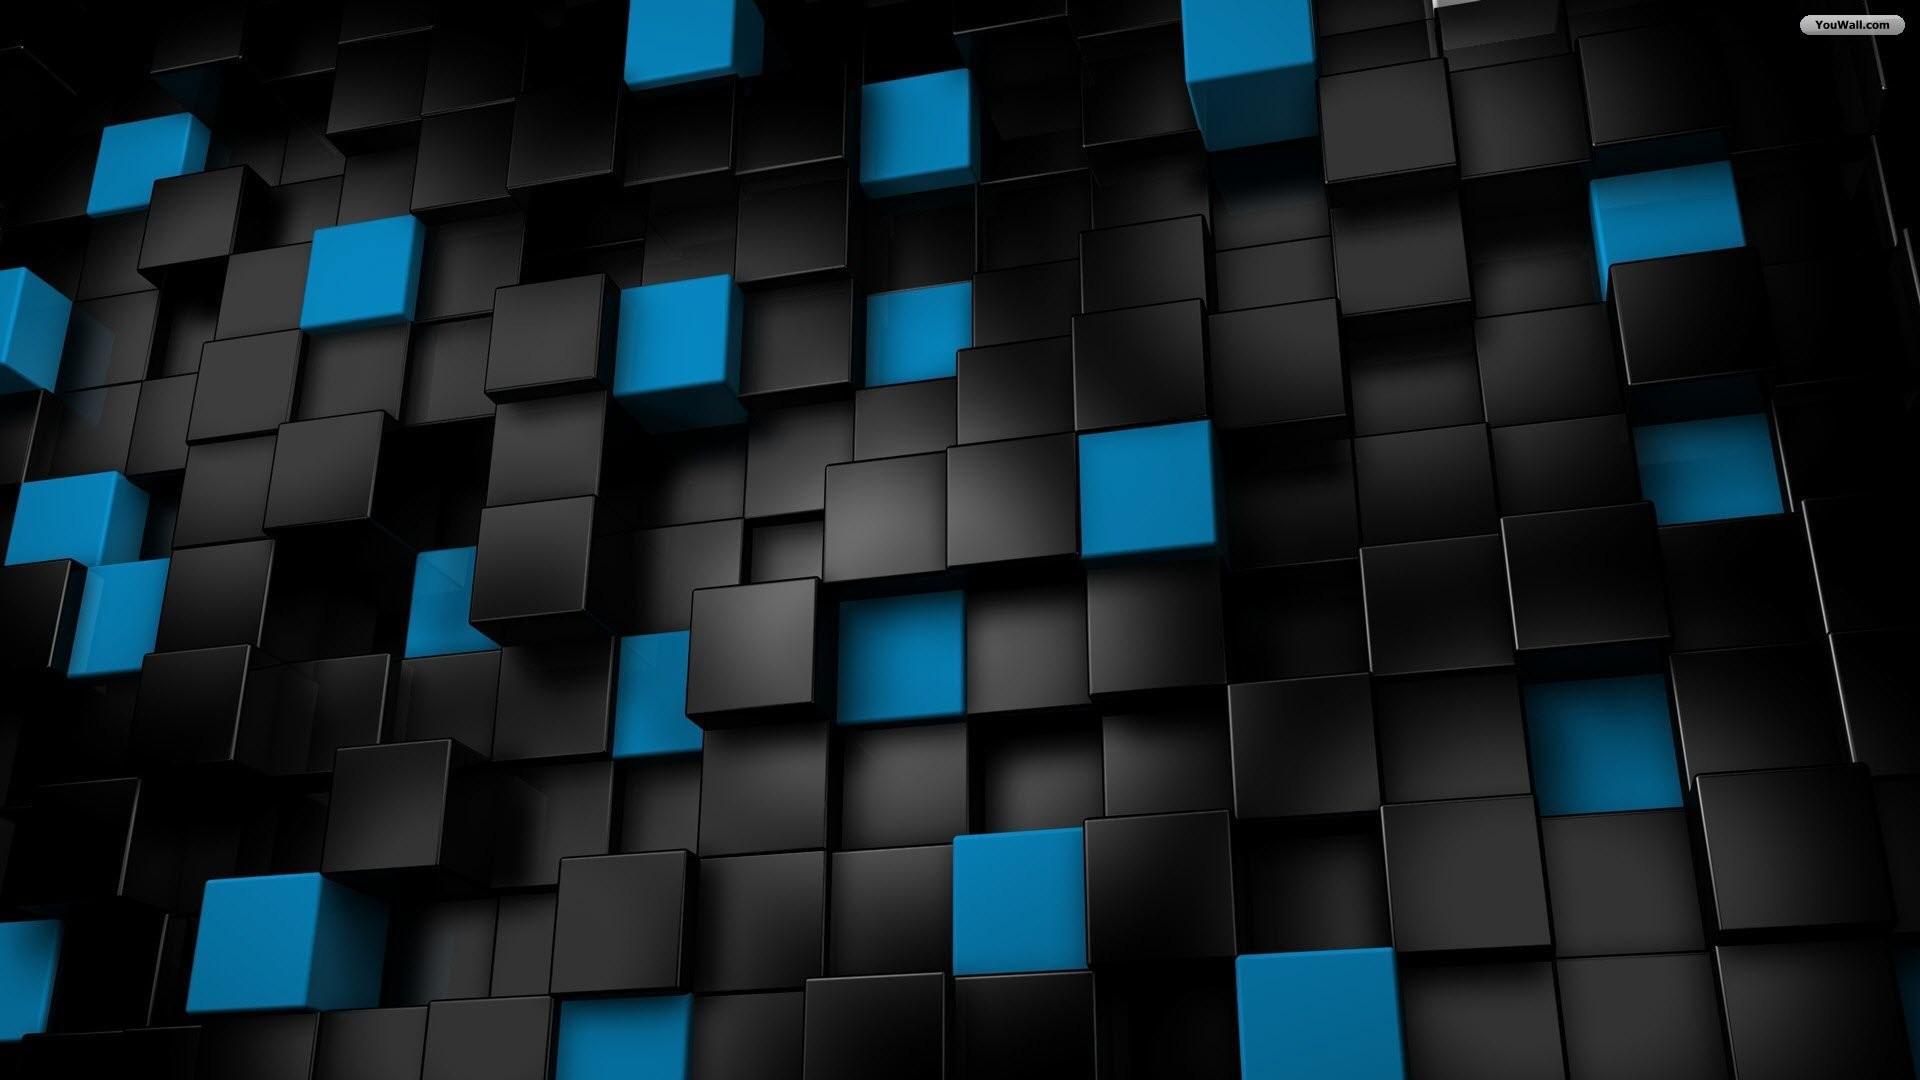 Download Black And Blue Cubes Wallpaper | Full HD Wallpapers